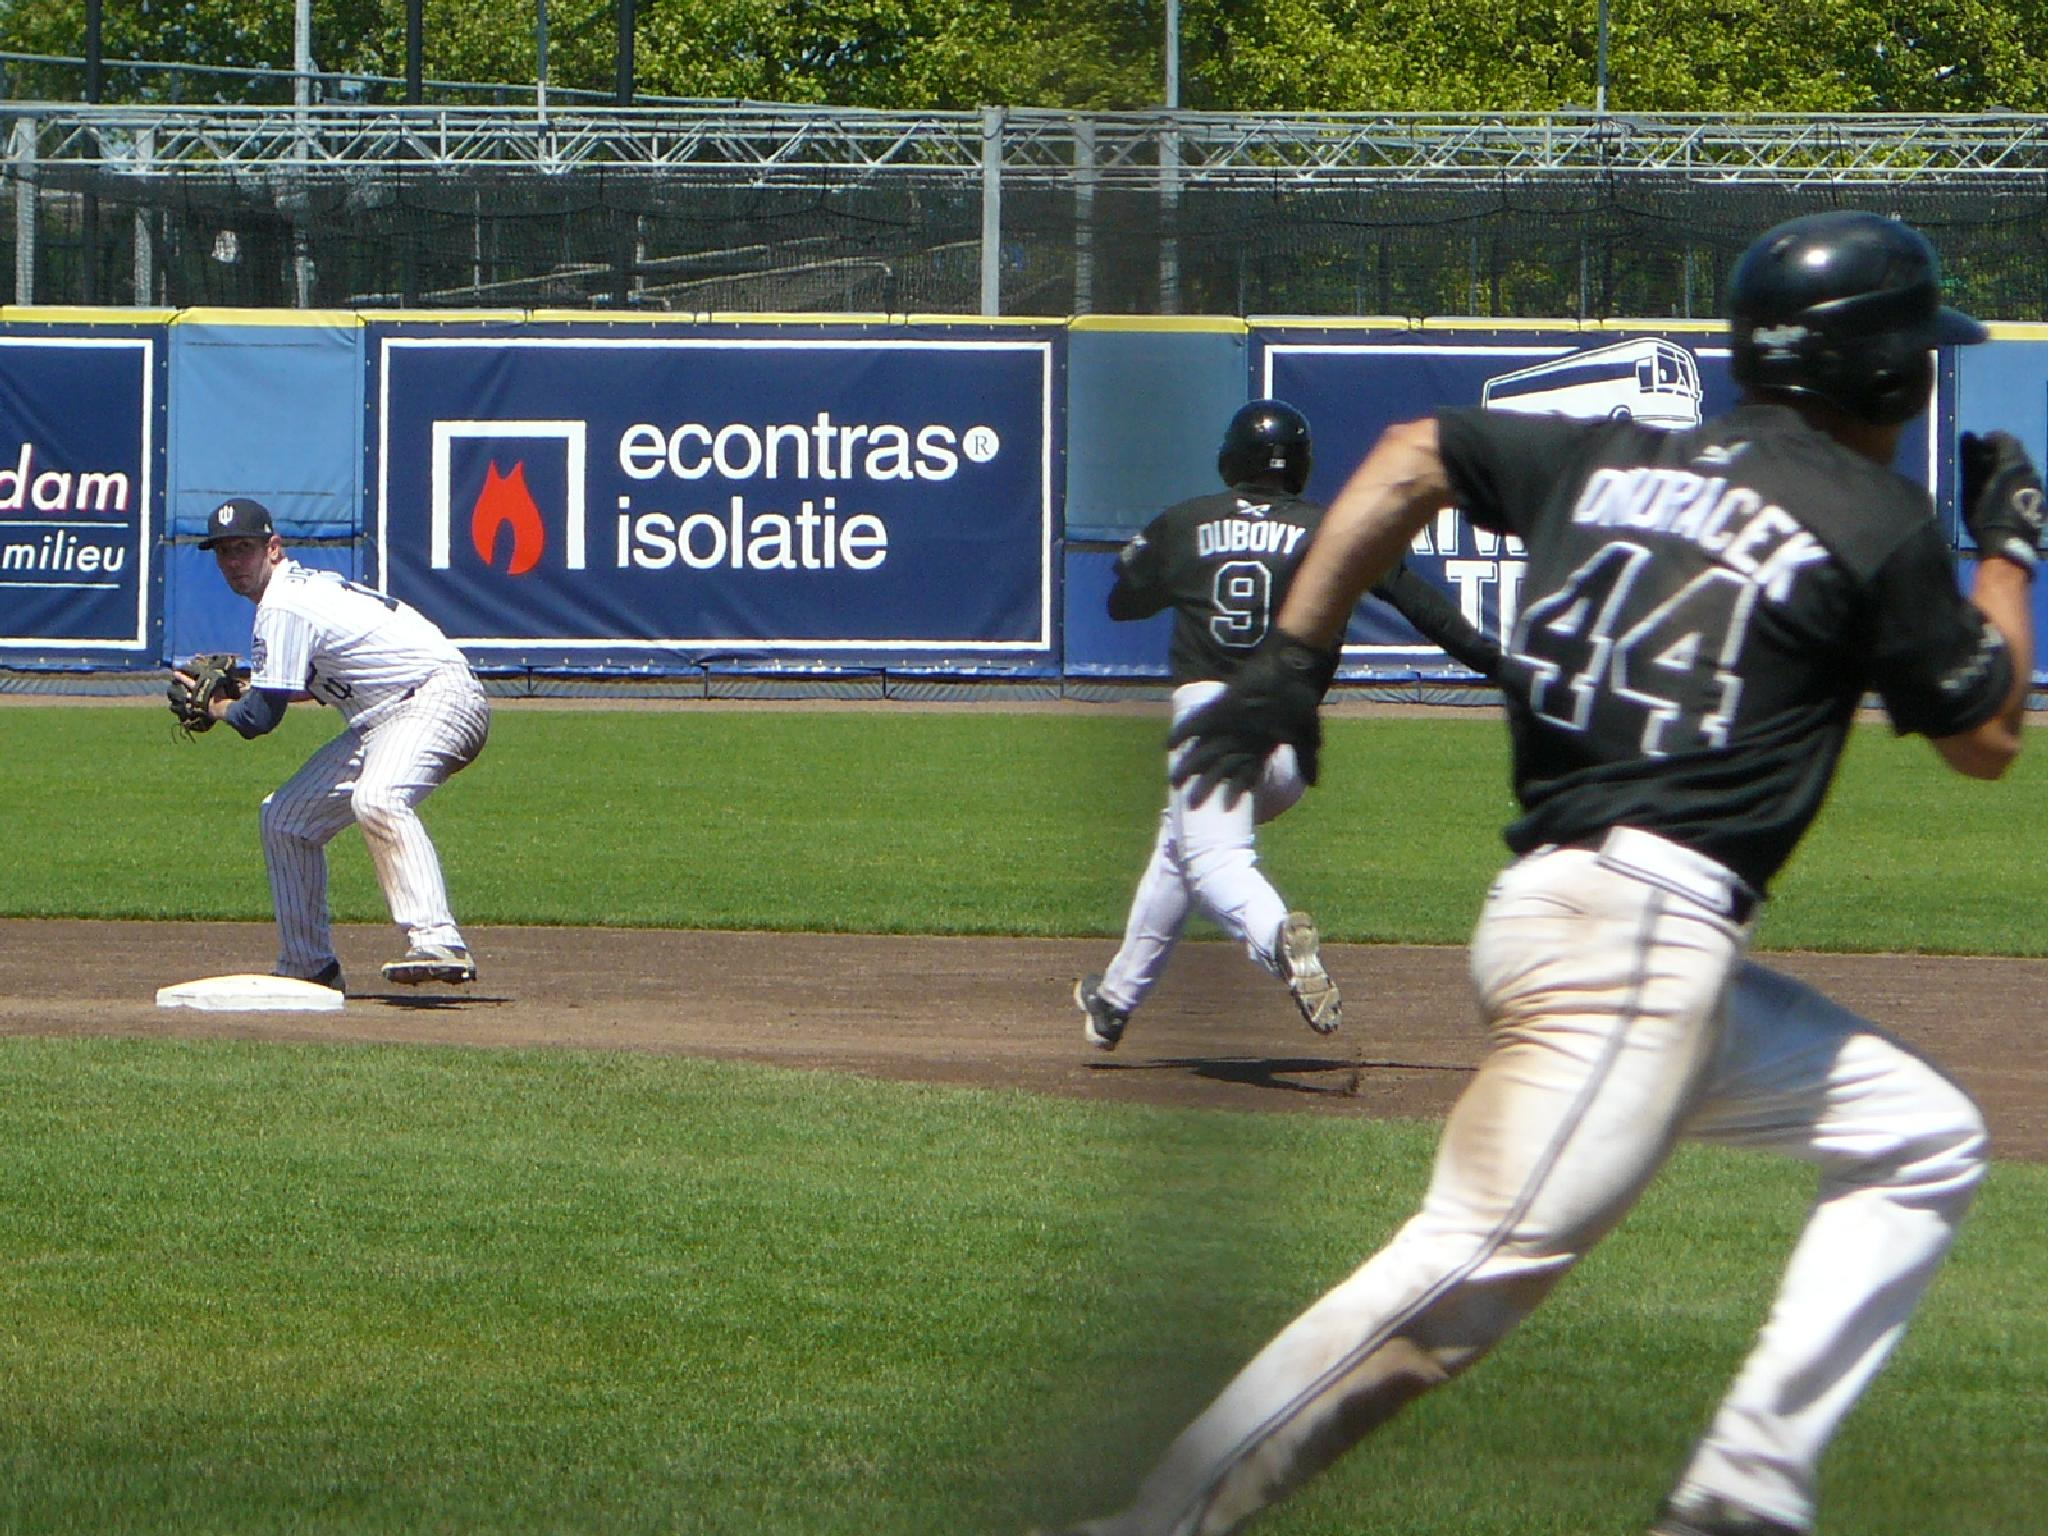 Setting up a double play by yankeebiscuitfan